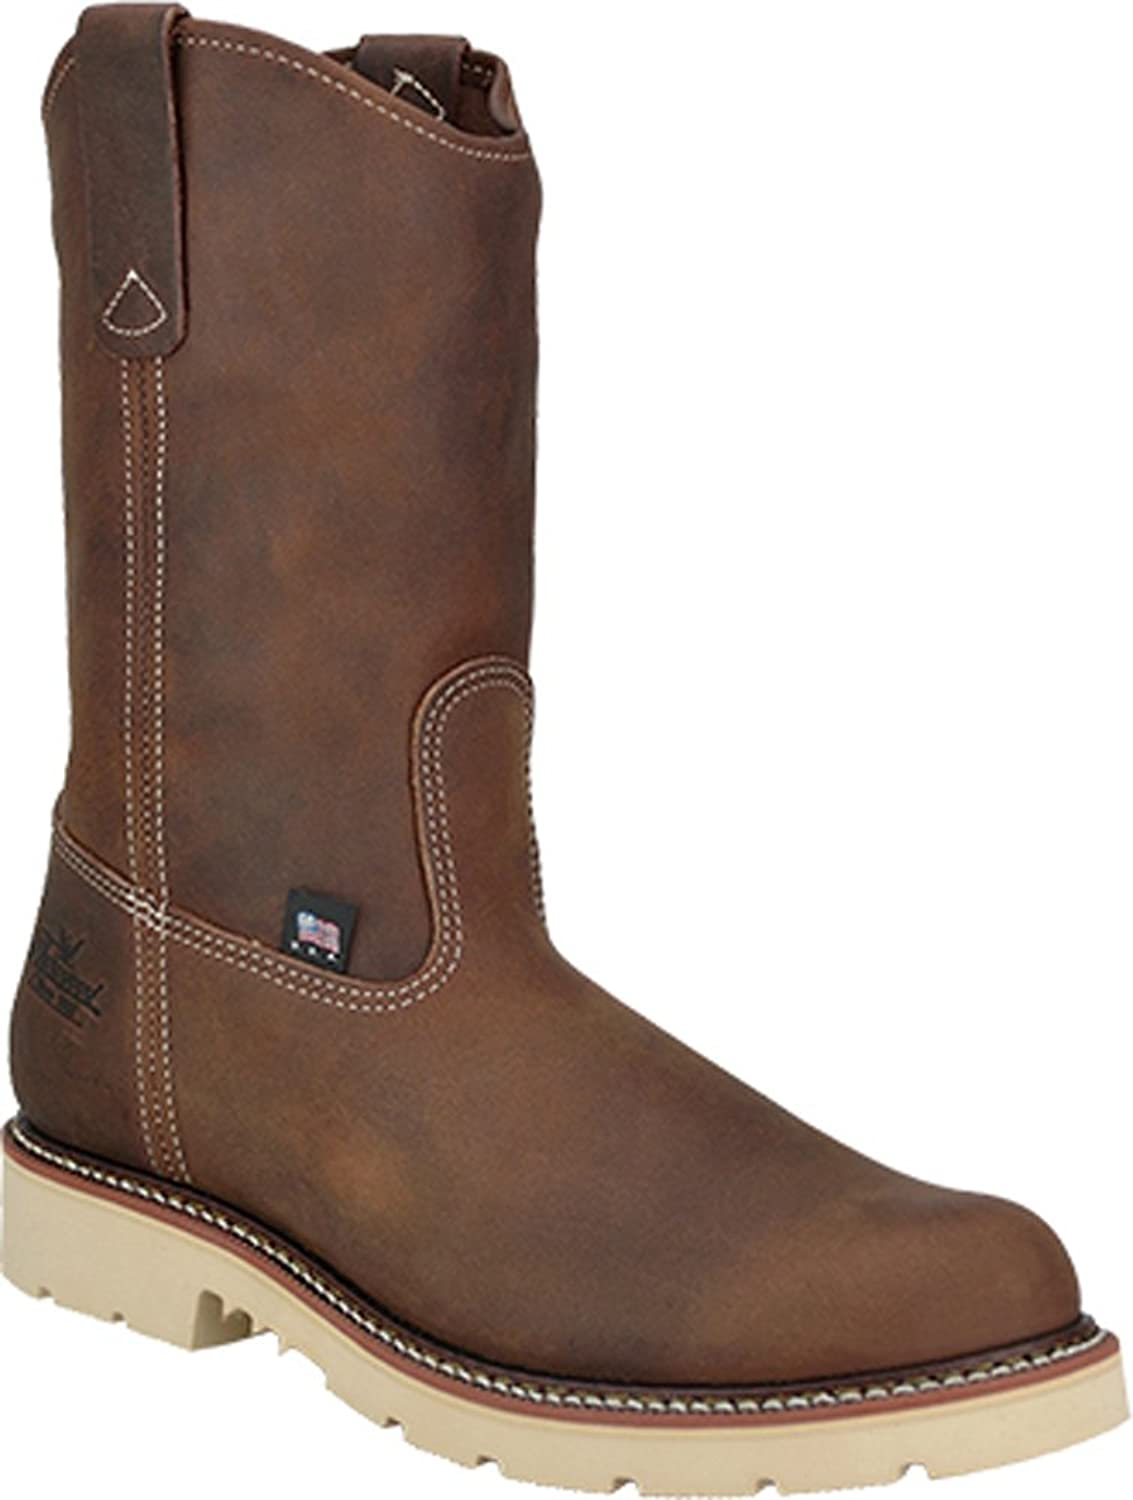 """Thorogood Men's 11"""" Wellington Non-Safety Leather Work Boots"""